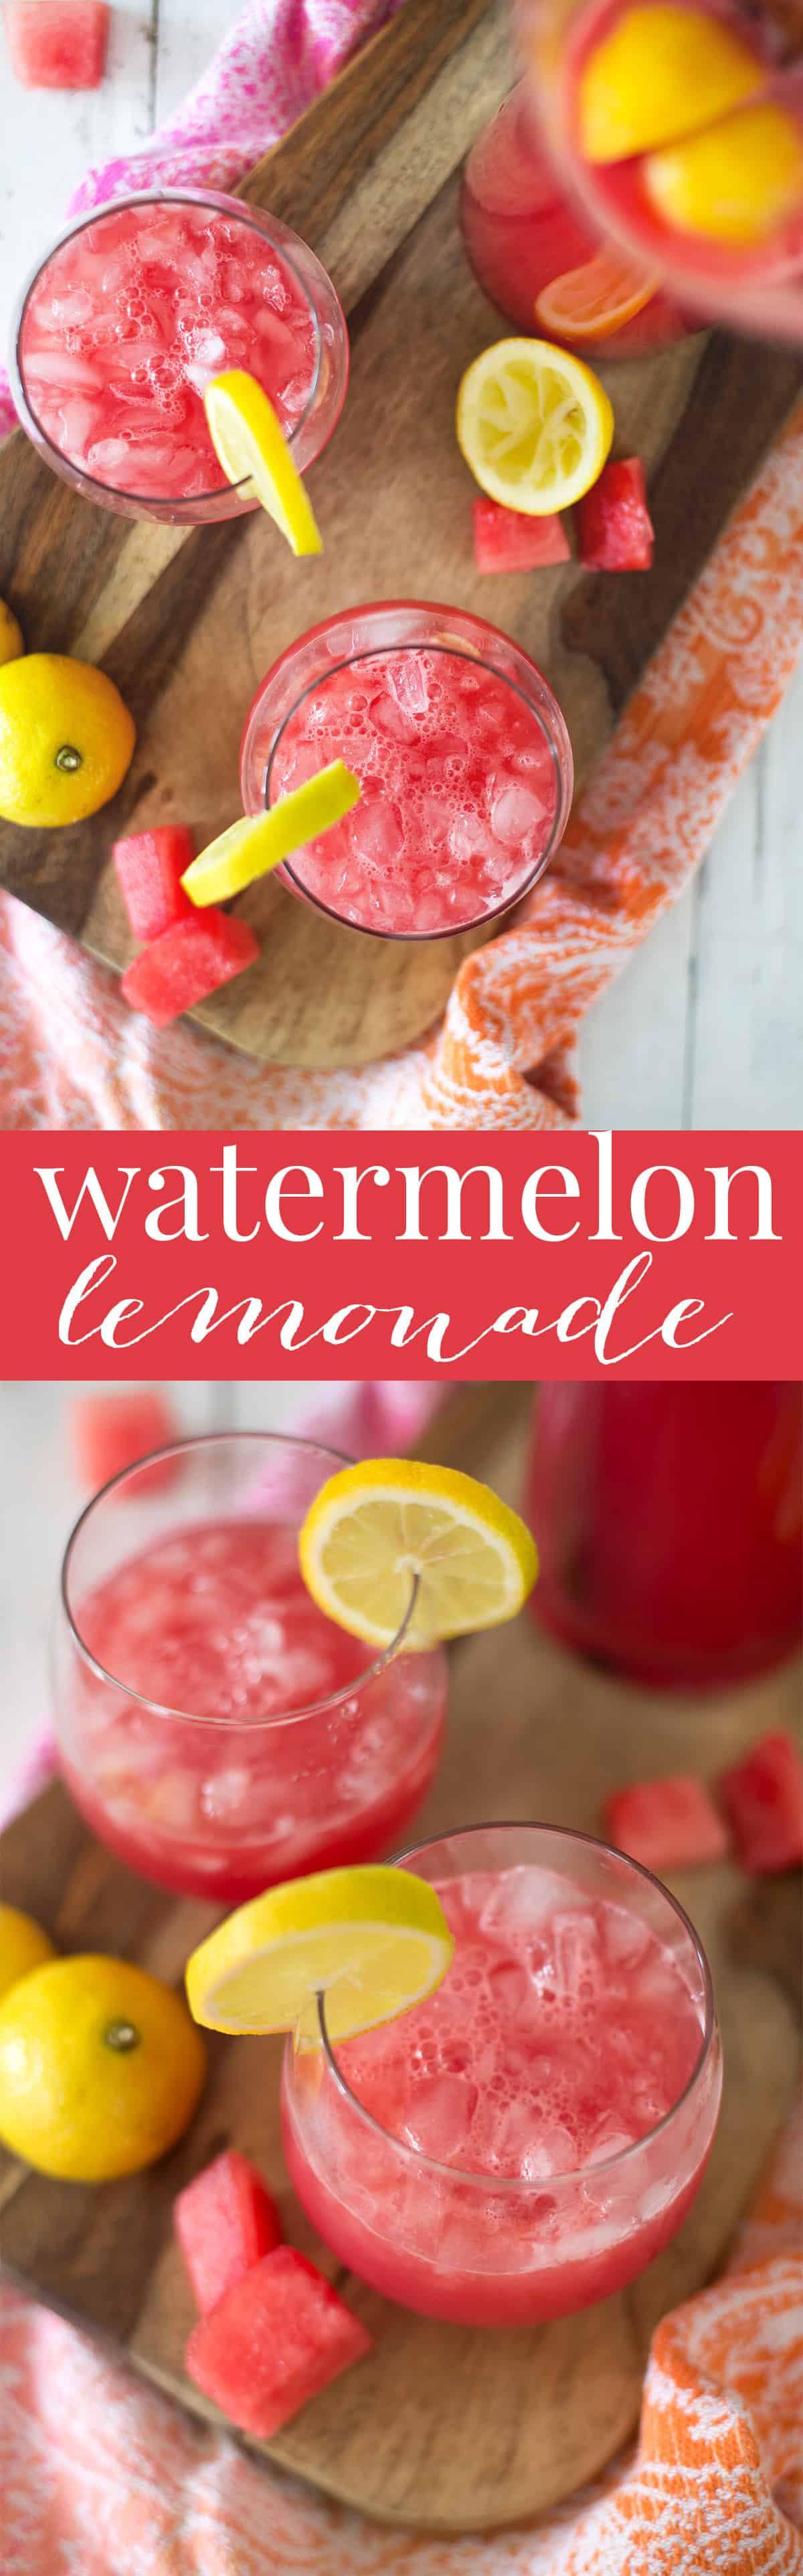 Watermelon Lemonade! Refreshing, lightly sweetened, the perfect beverage for hot summer days! Watermelon puree, fresh lemon juice and sparkling water. Vegan, Gluten-Free | www.delishknowledge.com